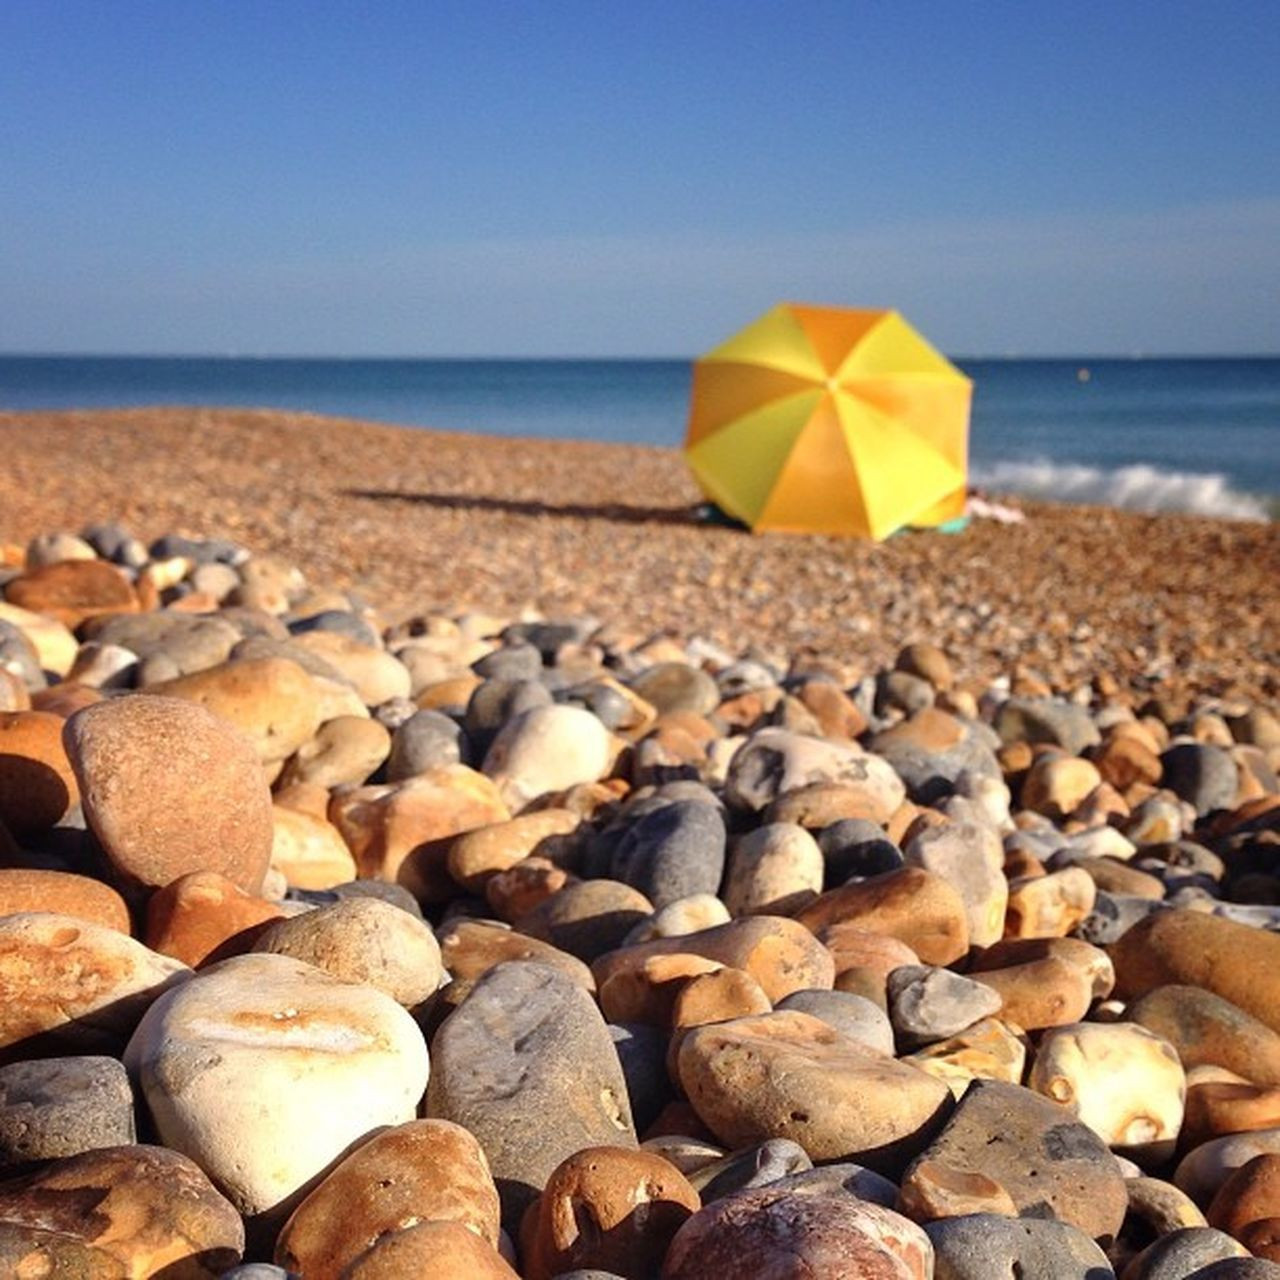 Another one with #pebbles and #yellow umbrella ?☀️????? #brighton #alan_in_brighton #gf_uk #gang_family #igers_brighton #insta_brighton #from_city #ic_cities_brighton #ig_england #gi_uk #allshots_ #aauk #mashpics #pro_shooters #capture_today #top_masters Loveyoursummer Mashpics Top_masters From_city Pro_shooters Yellow Brighton Secretlandscapes Gang_family Barbourwildbritain Pebbles Alan_in_brighton Allshots_ Insta_brighton Gf_uk Igers_brighton Gi_uk Ig_england Aauk Ic_cities_brighton Capture_today